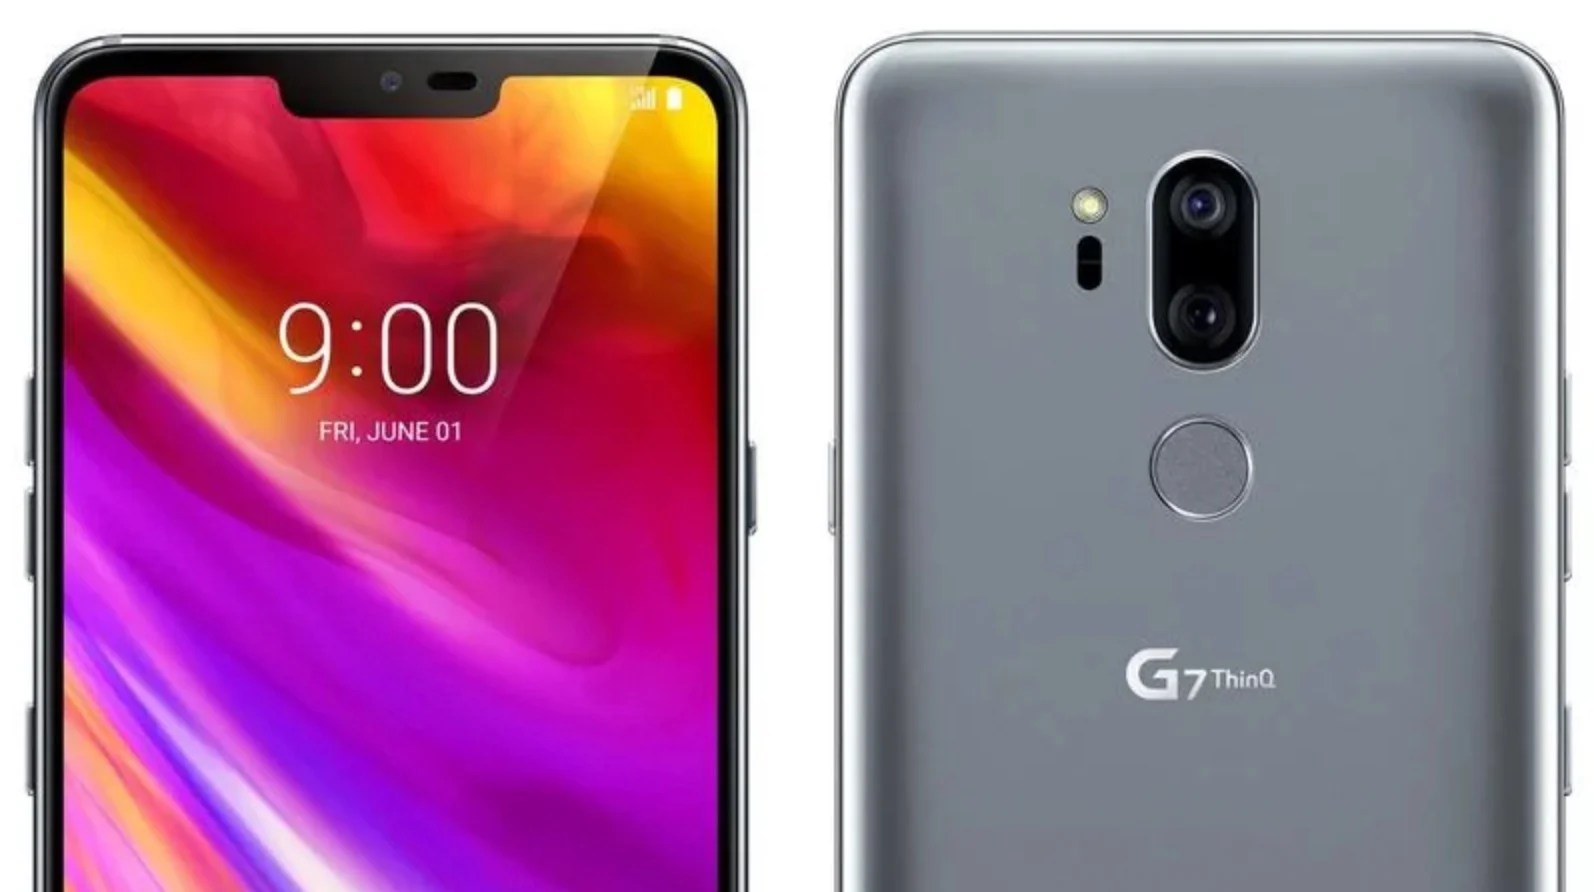 Mobile phone jammer SA , LG G7: 3 cool new camera features